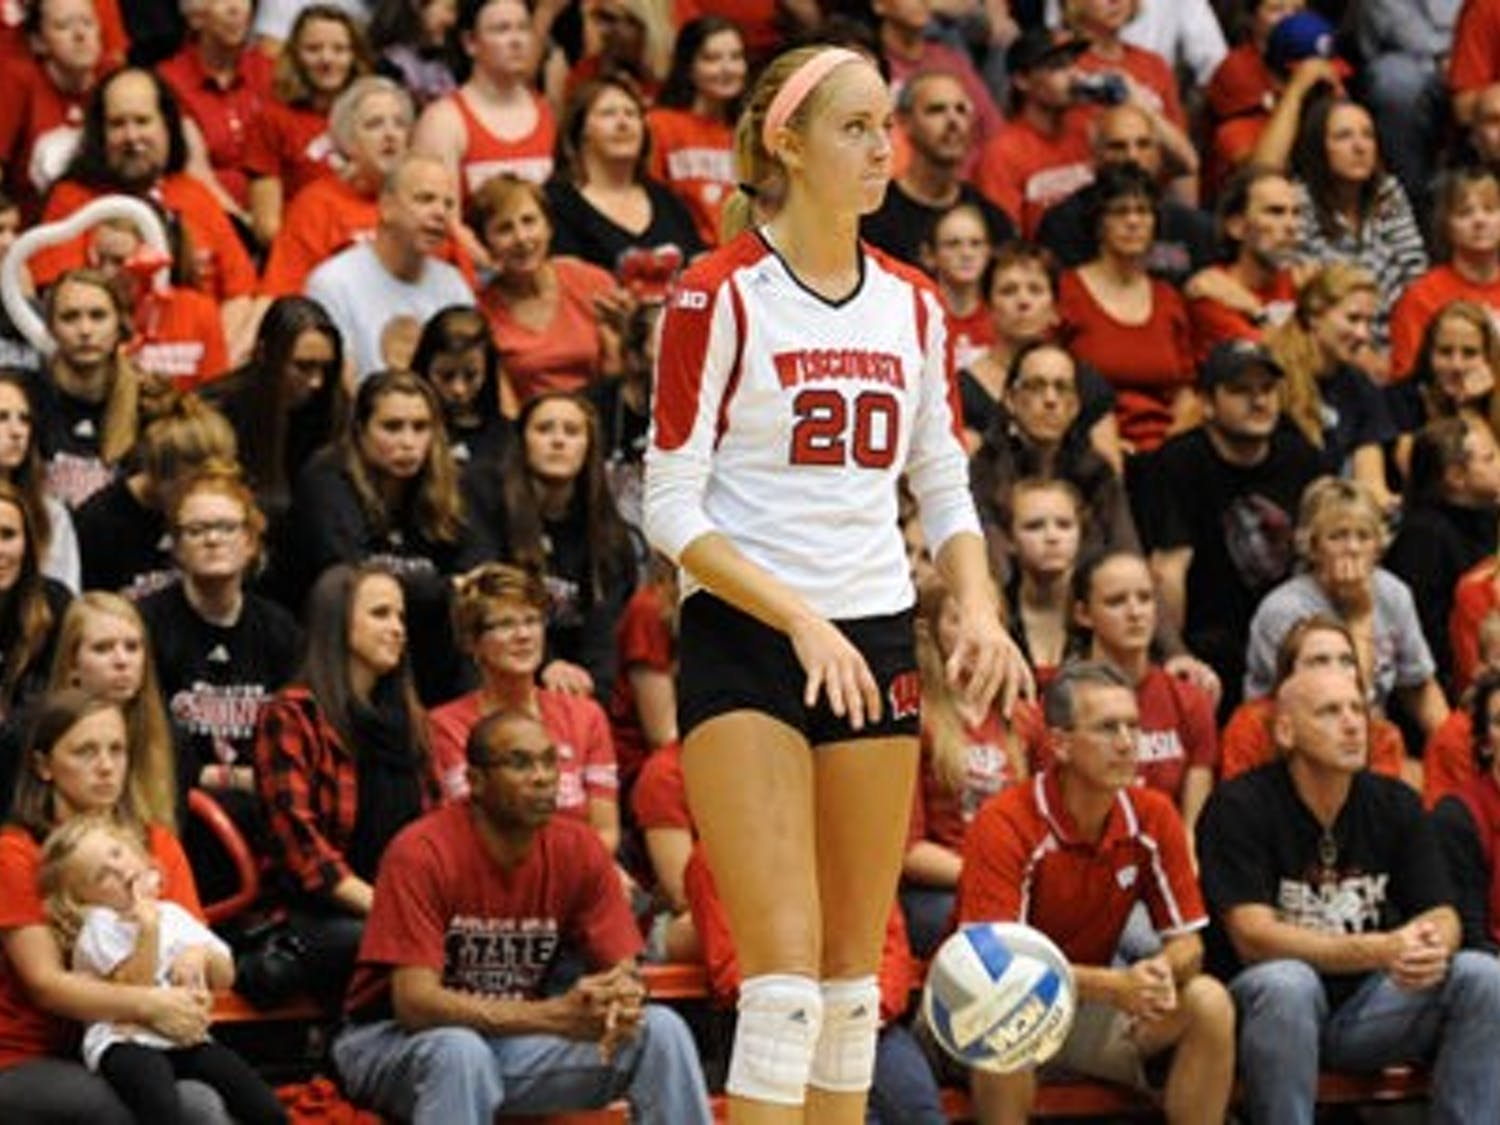 Despite leading the Badgers with 13 kills, senior outside hitter Ellen Chapman could not lead Wisconsin to a win over Penn State Wednesday in a rematch of last year's national title game.